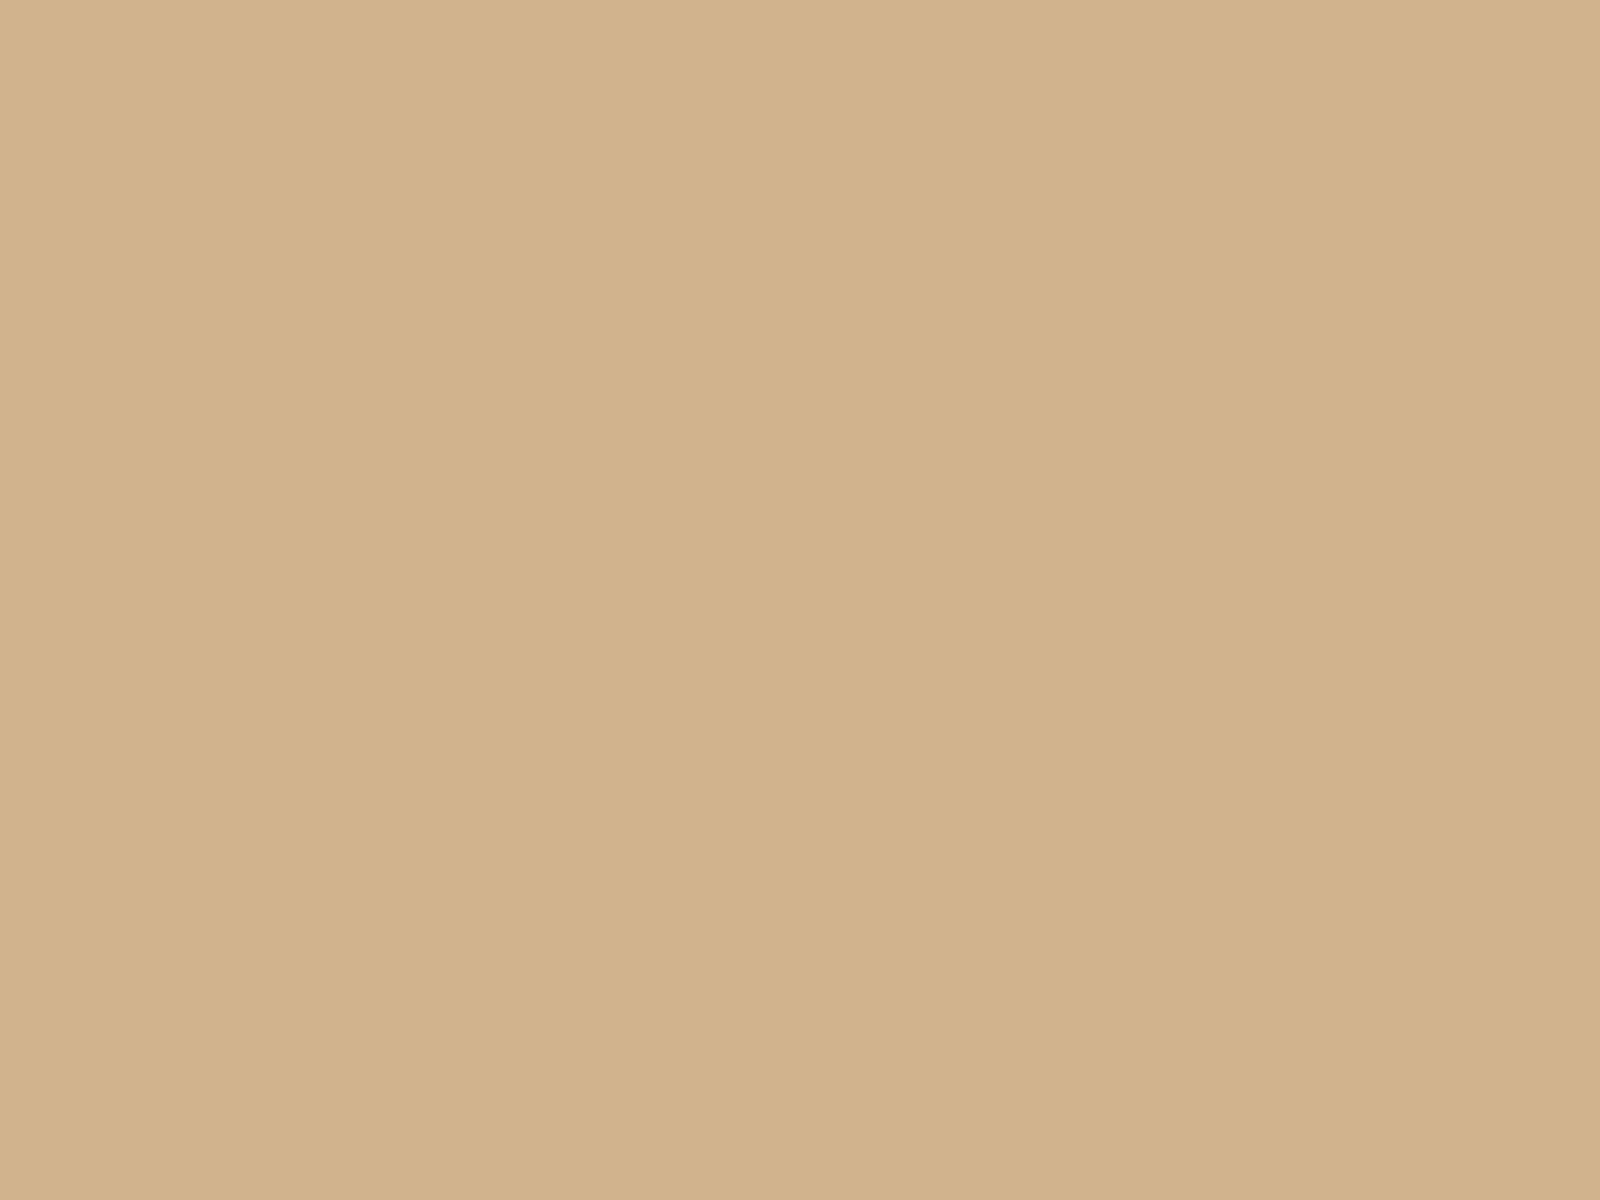 1600x1200 Tan Solid Color Background